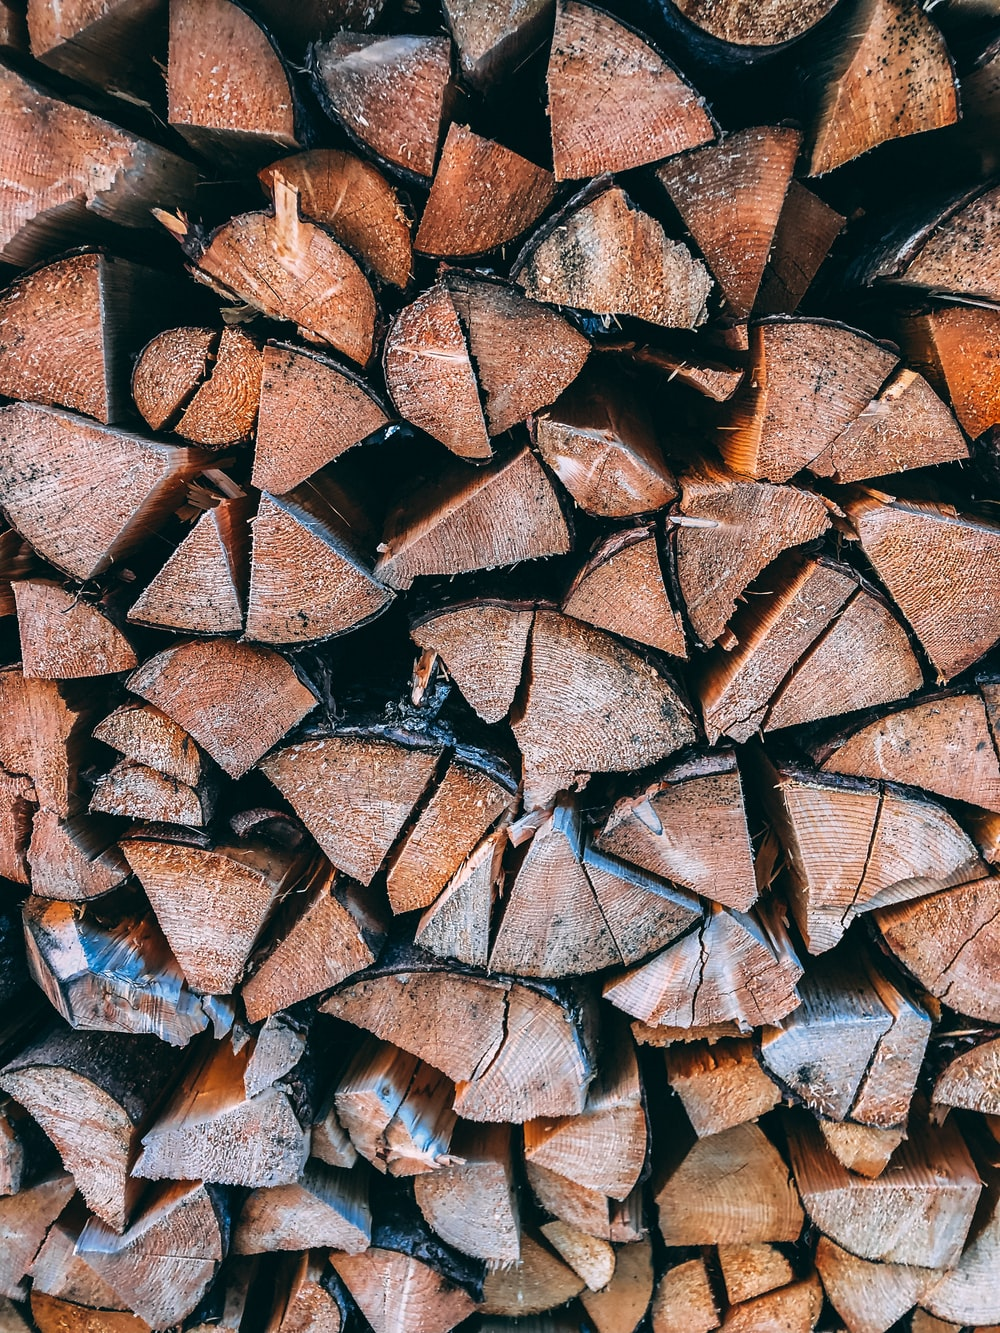 close-up photo of brown firewood